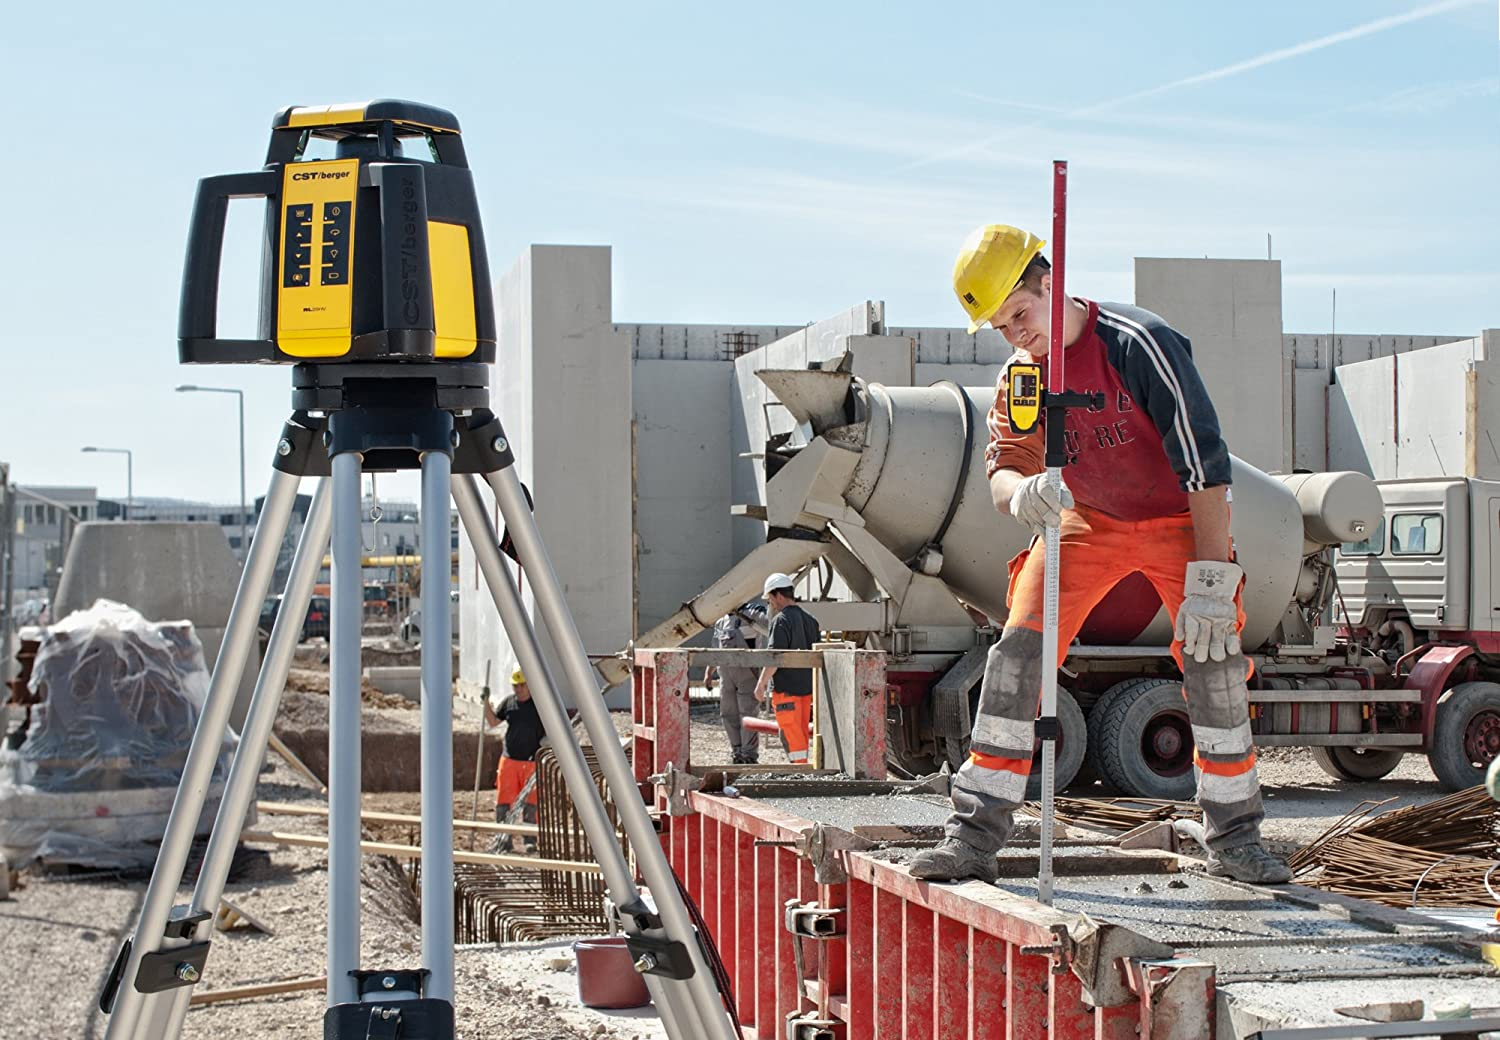 best rotary laser level consumer reports